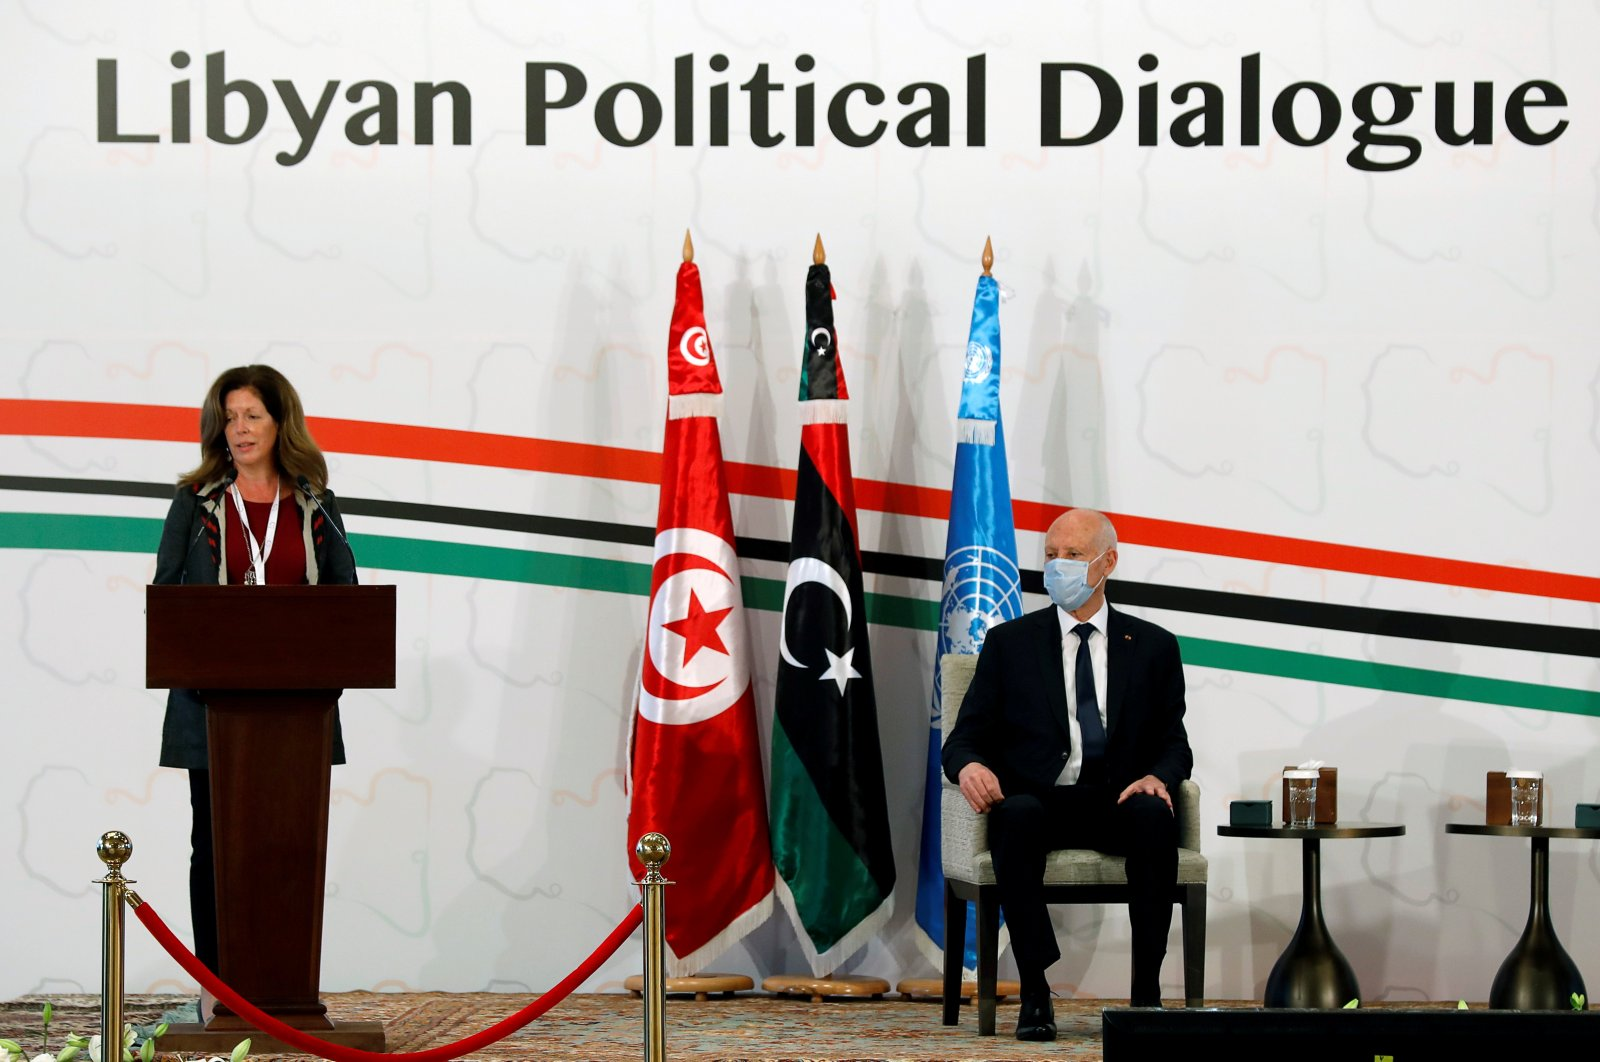 Deputy Special Representative of the U.N. Secretary-General for Political Affairs in Libya Stephanie Williams speaks to Tunisia's President Kais Saied during the Libyan Political Dialogue Forum in Tunis, Tunisia, Nov. 9, 2020. (REUTERS Photo)